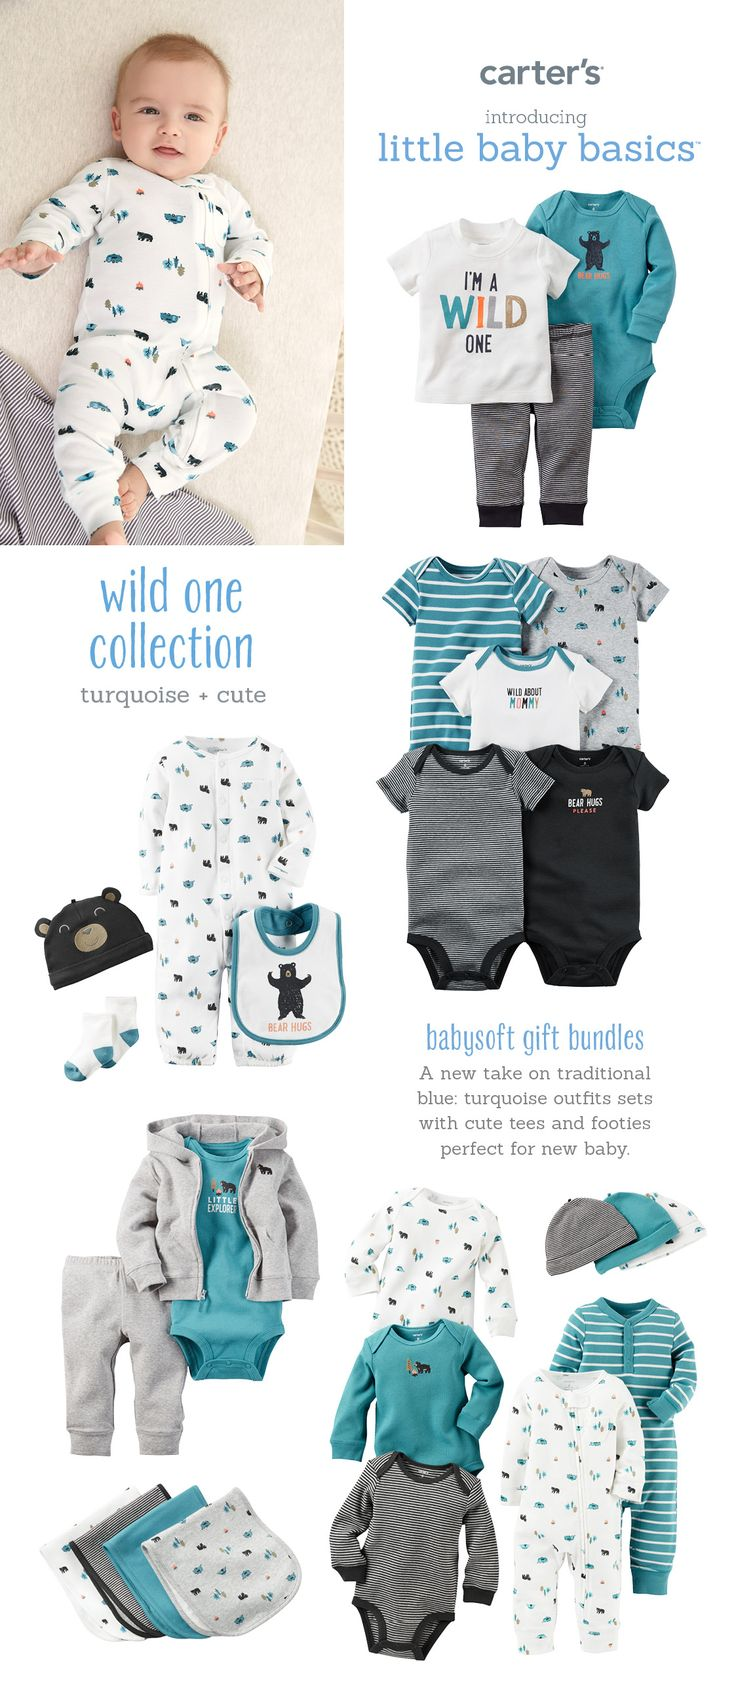 17 Best Images About Carter S Little Baby Basics On